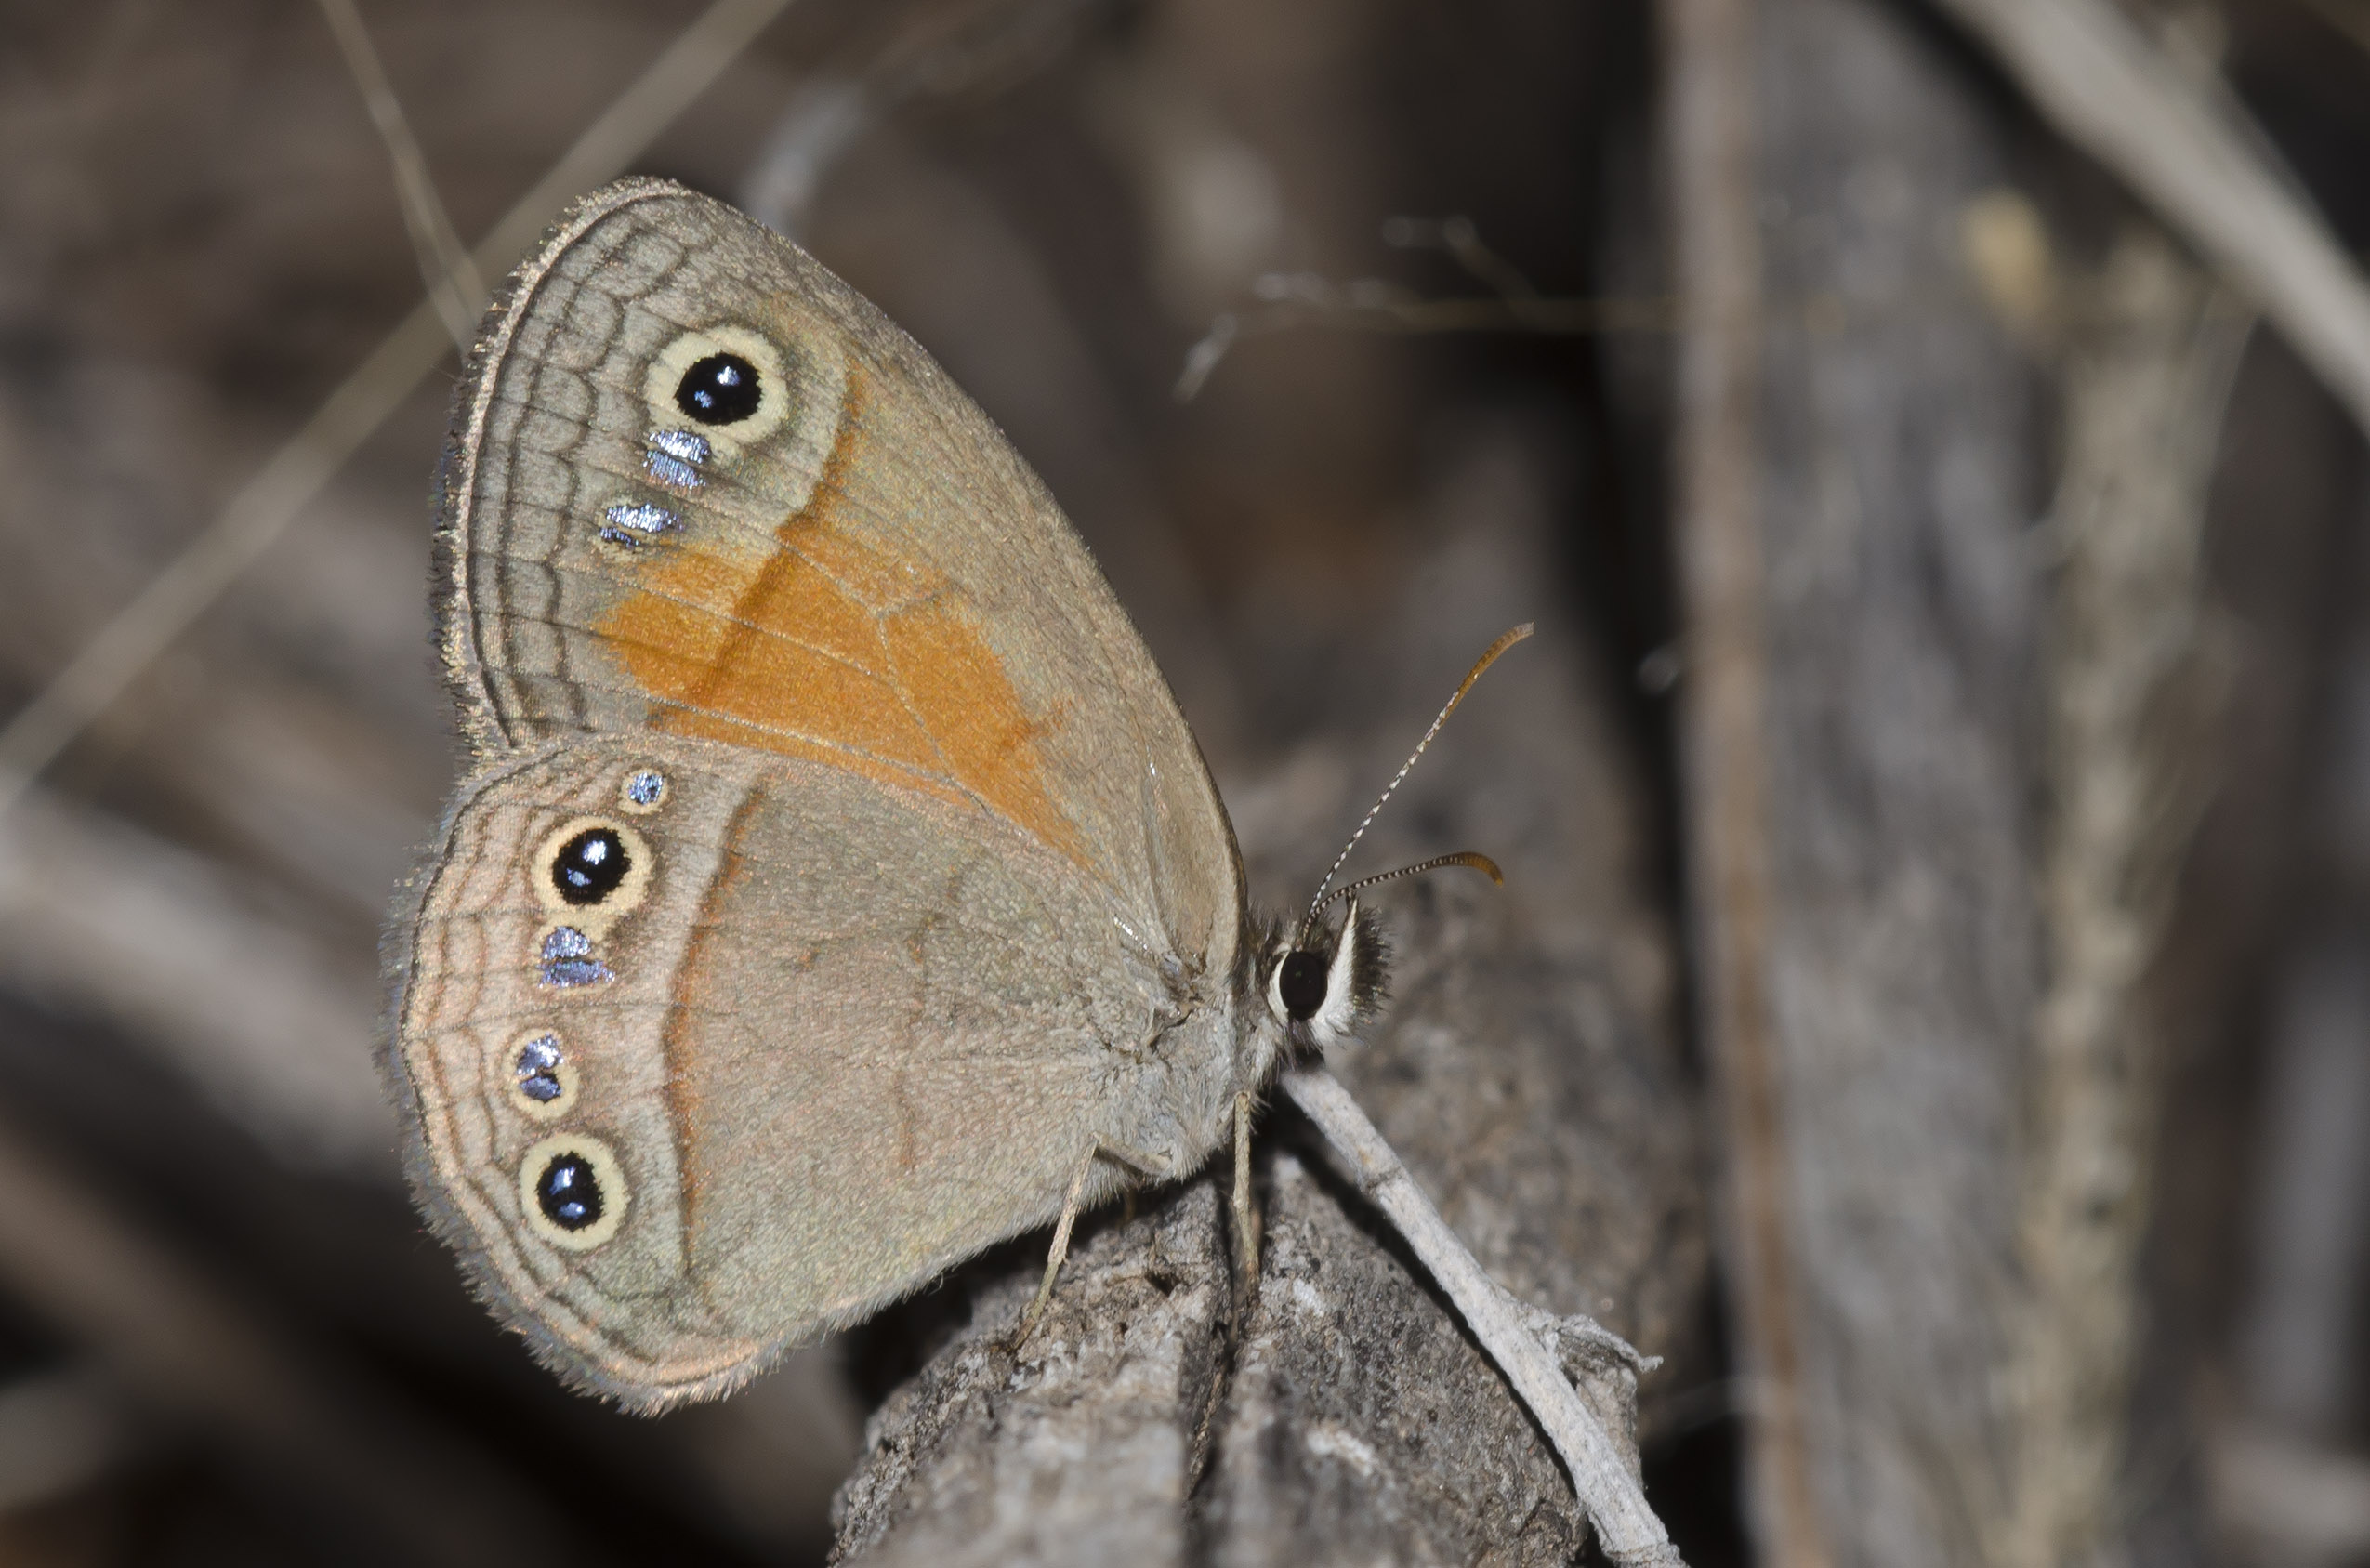 A brown and orange butterfly sits with its wings closed above it's body. The wings have a row of dark eyespots